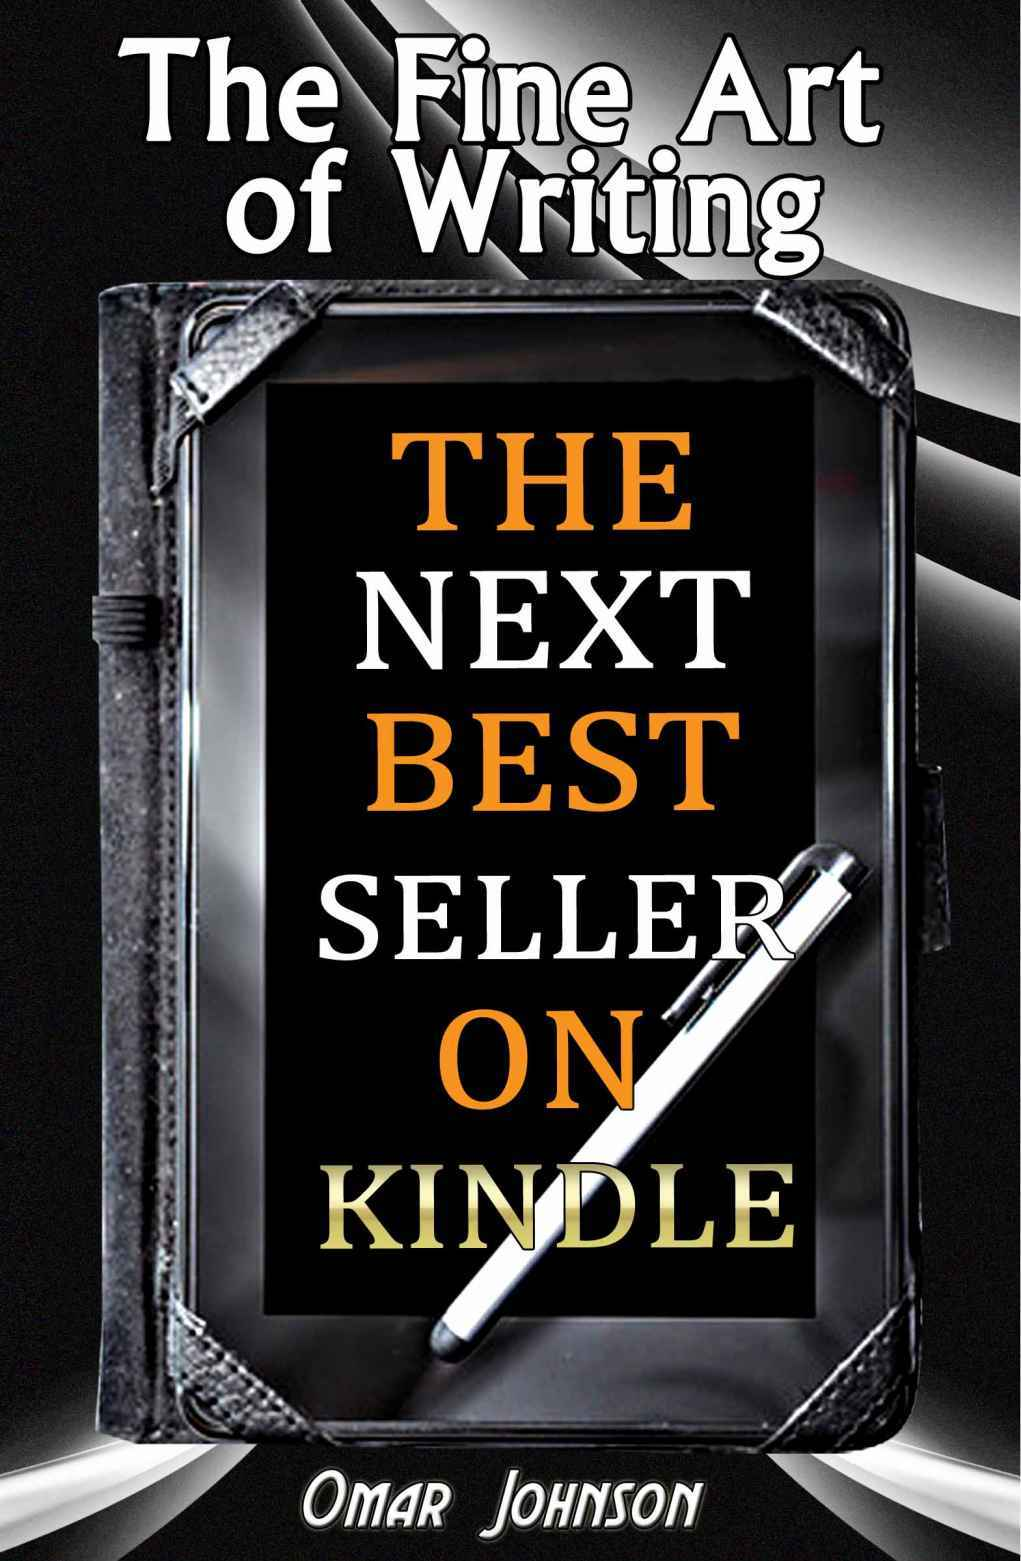 Johnson Omar - The Fine Art of Writing the Next Best Seller on Kindle скачать бесплатно